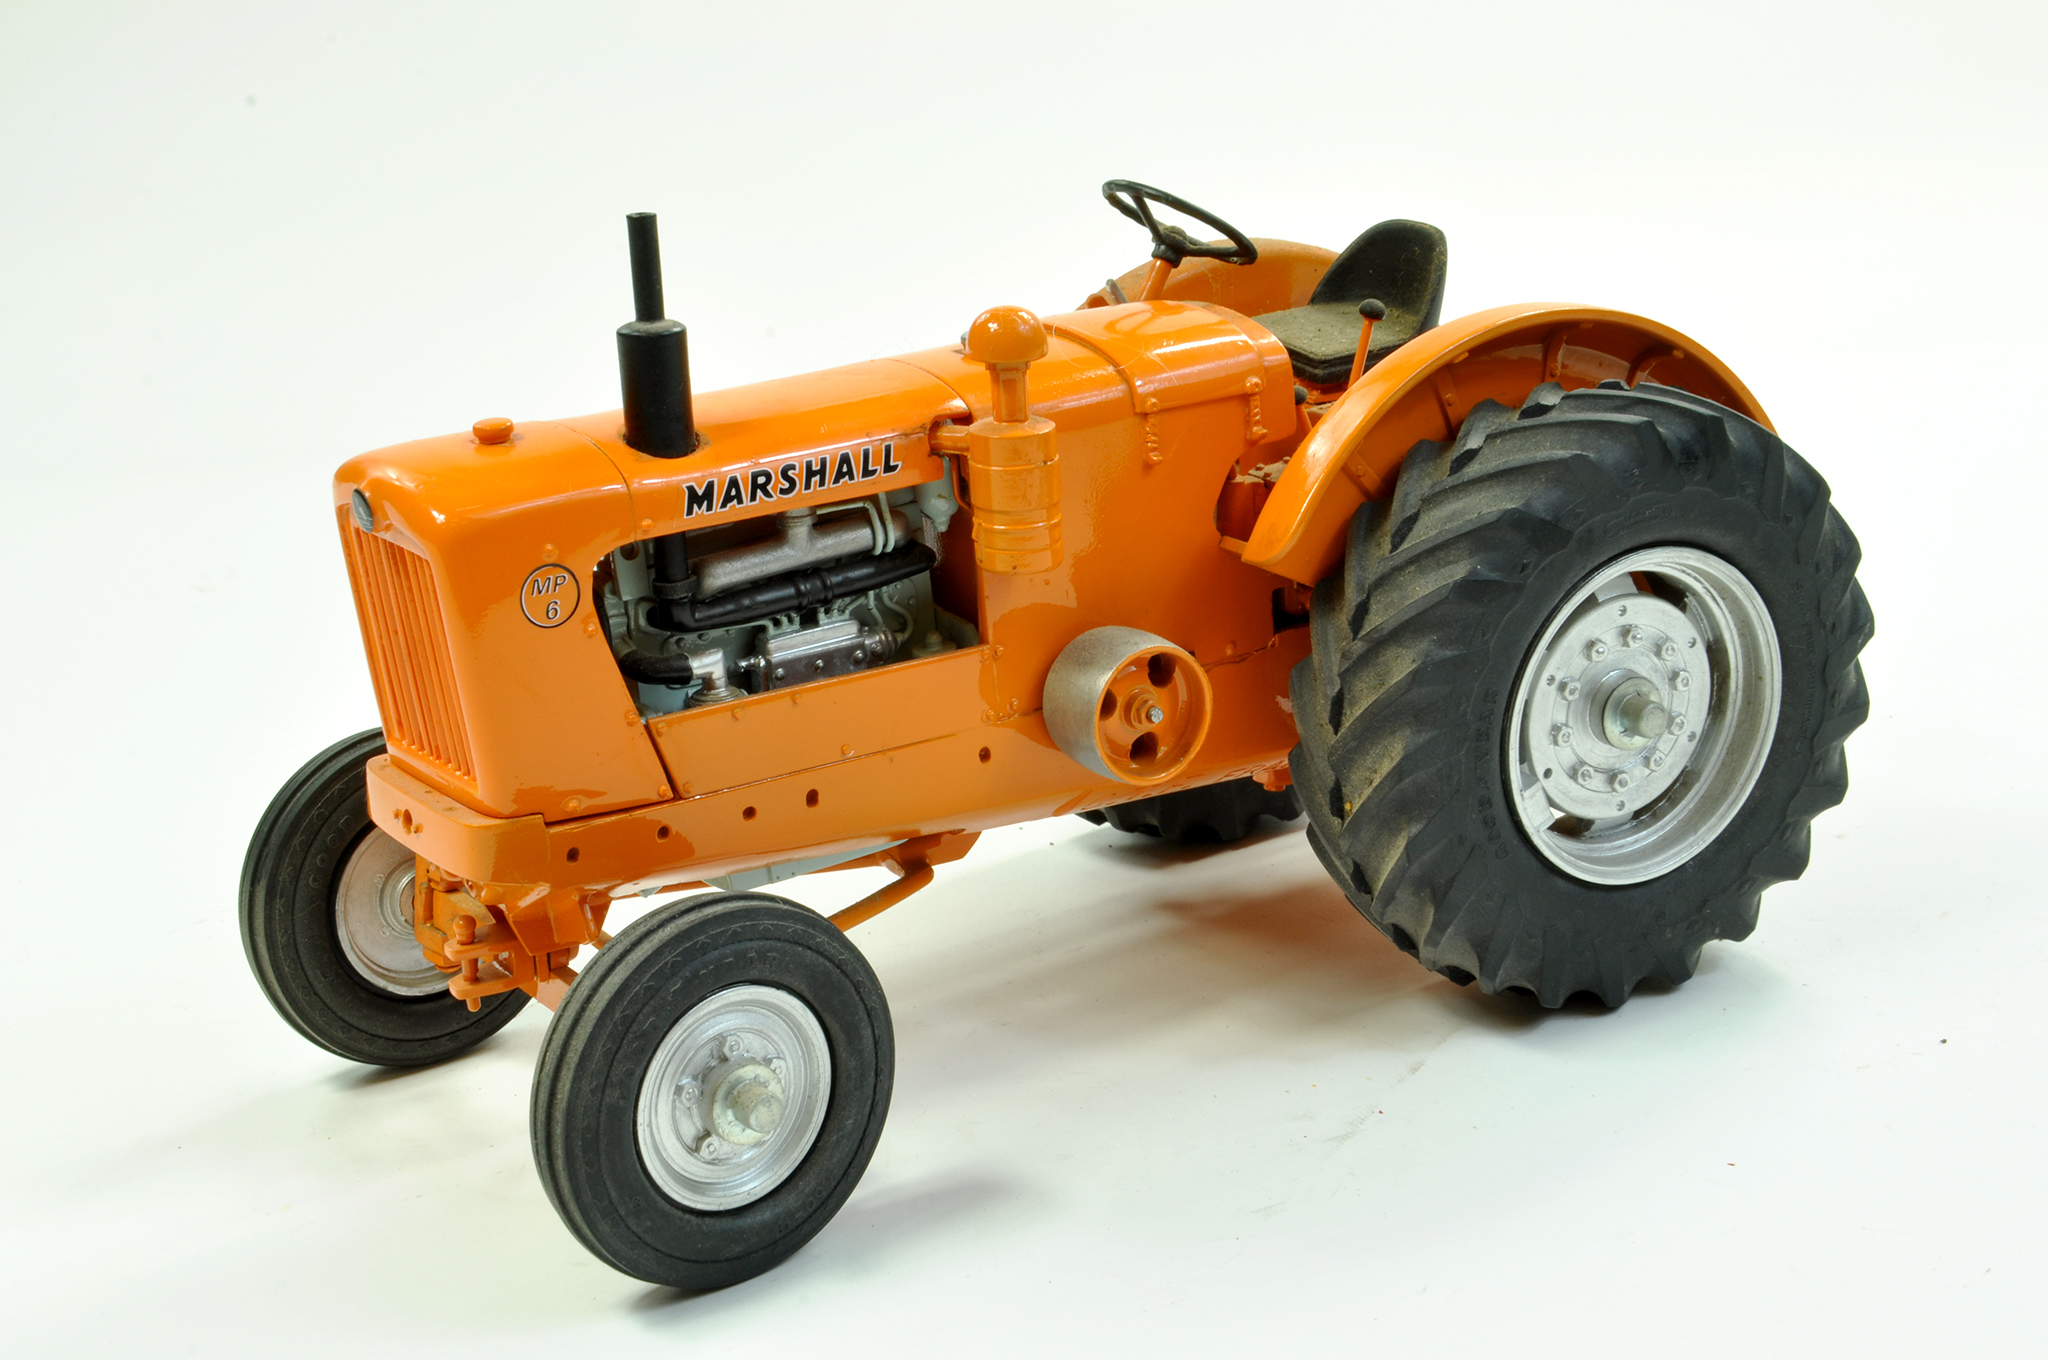 Lot 38 - CTF (France) 1/16 Marshall MP6 Tractor. This hard to find piece has been hand built to a high